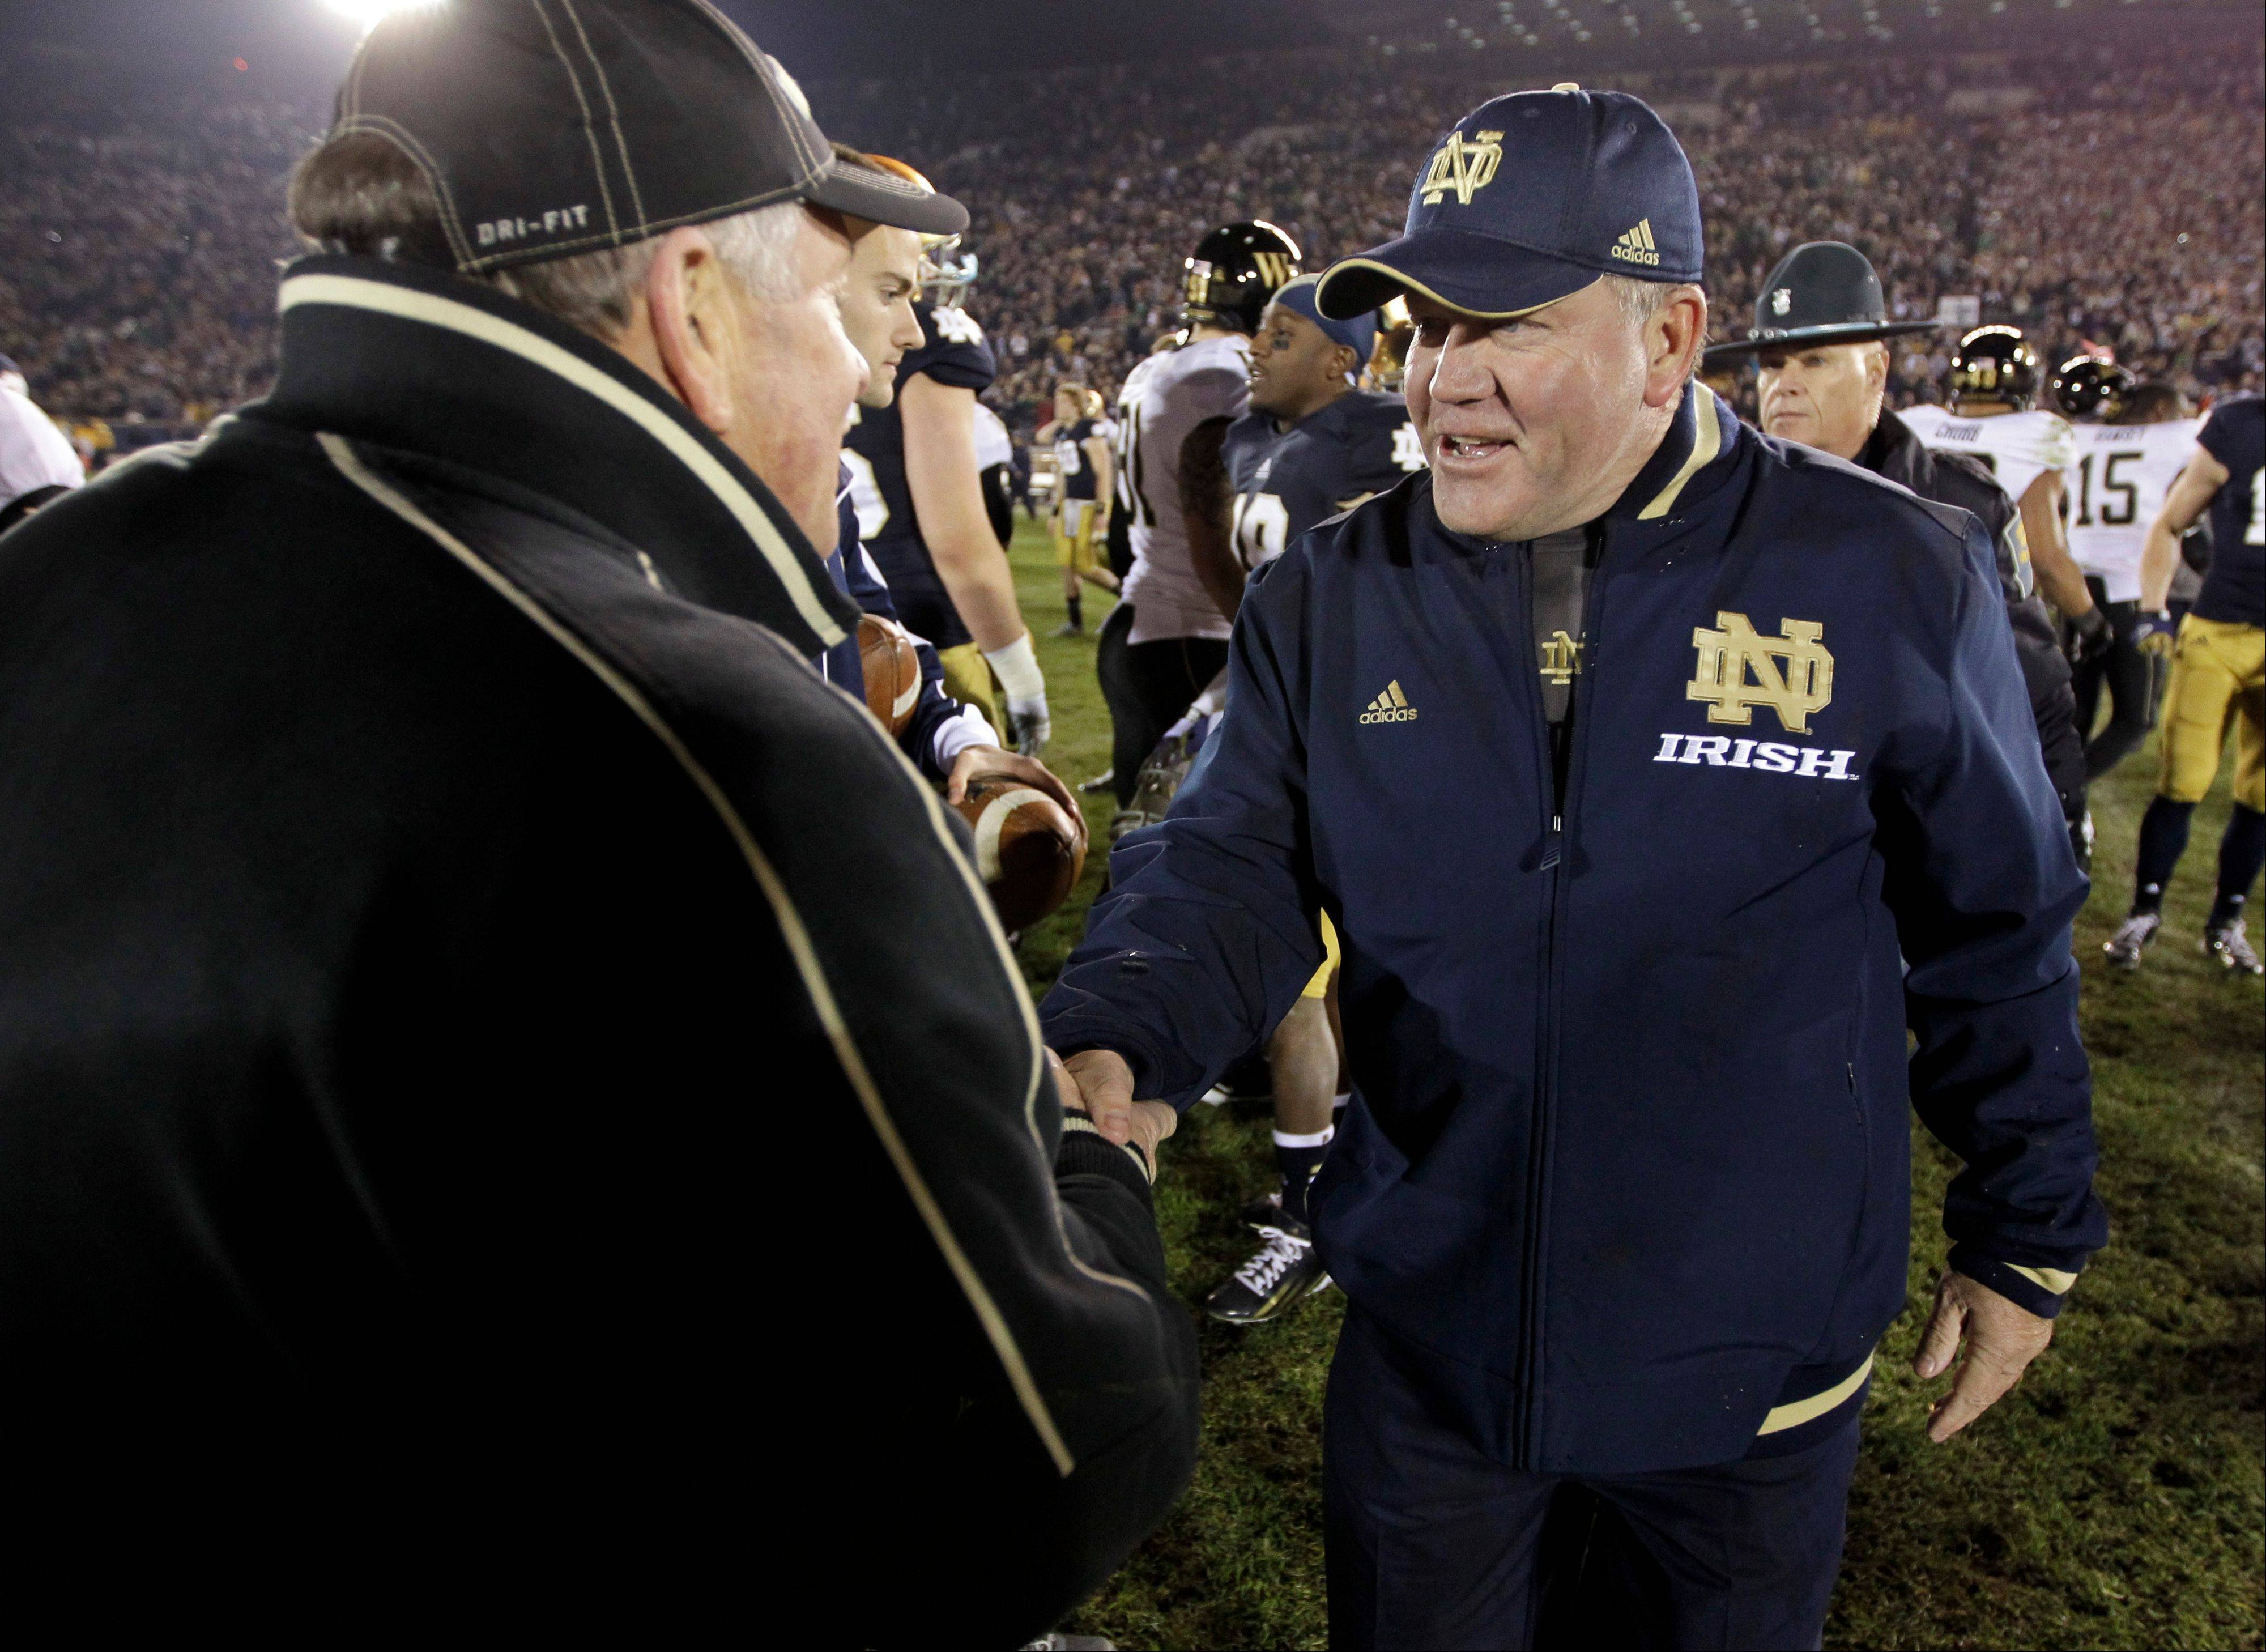 Notre Dame head coach Brian Kelly, right, meets with Wake Forest head coach Jim Grobe following Saturday's 38-0 win by the Fighting Irish.